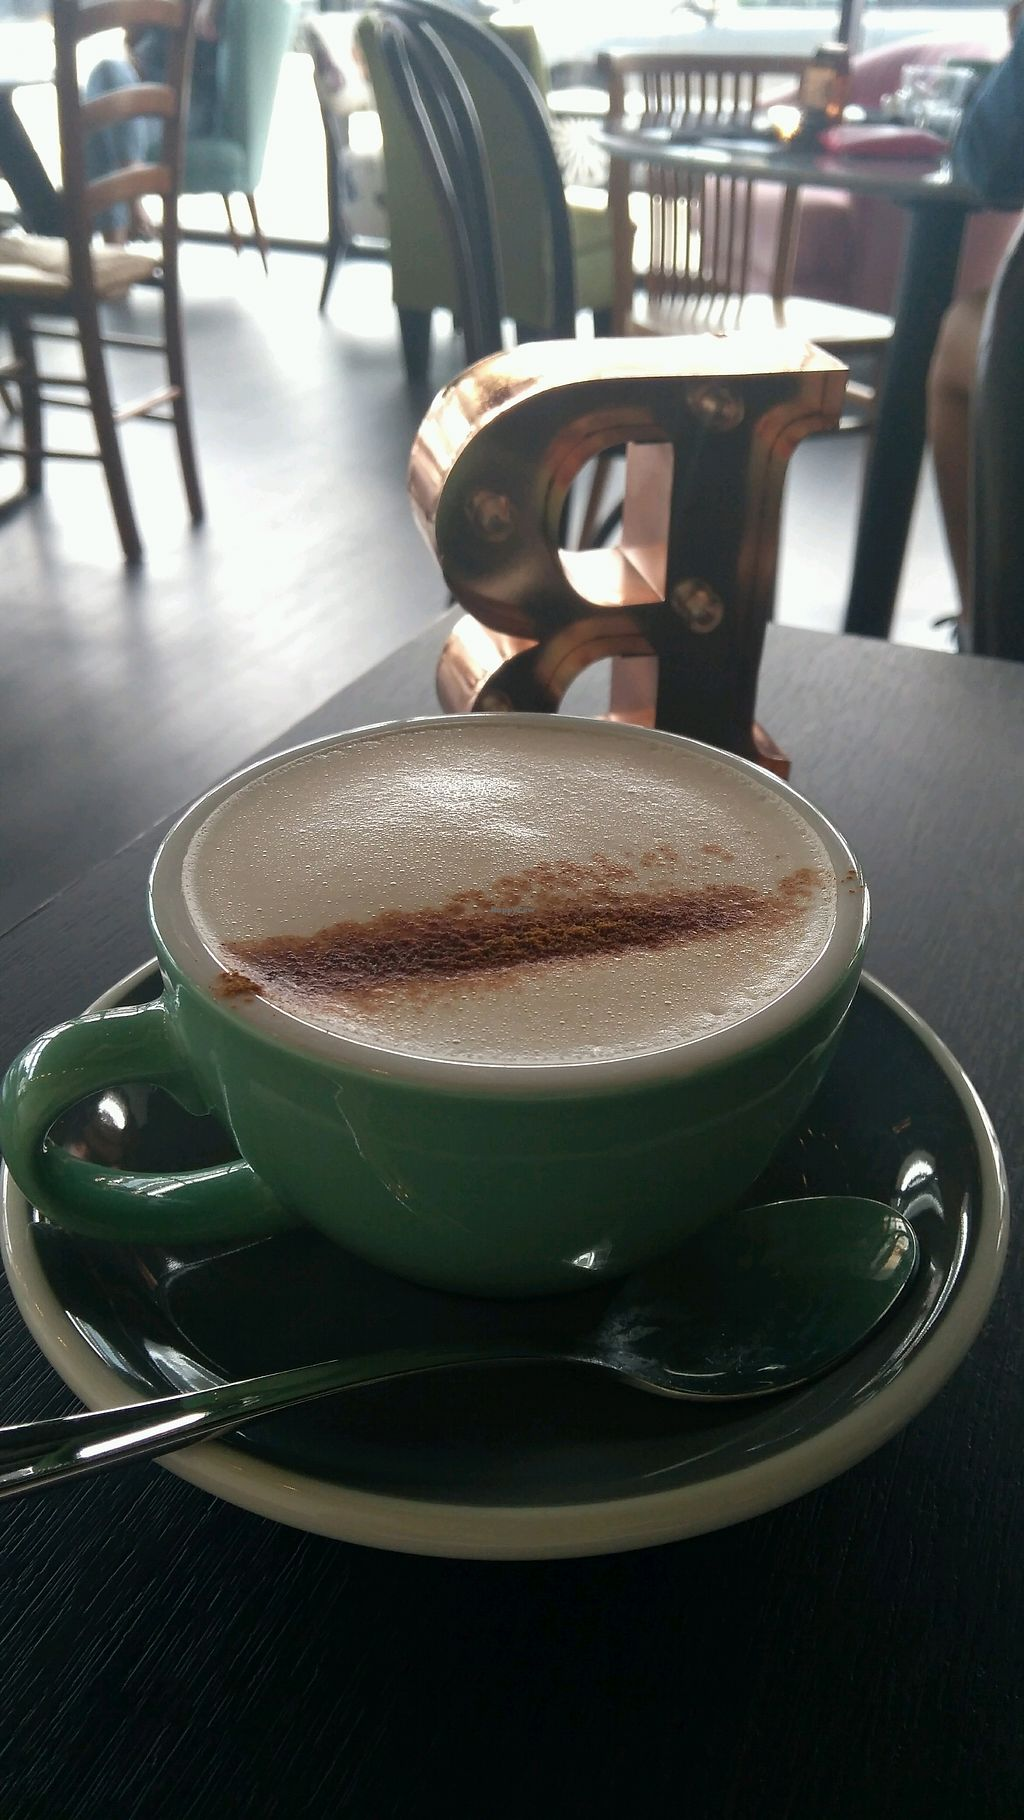 "Photo of Raw Sugar Cafe  by <a href=""/members/profile/Pandini"">Pandini</a> <br/>chai latte on coconut milk <br/> February 3, 2018  - <a href='/contact/abuse/image/107404/354251'>Report</a>"